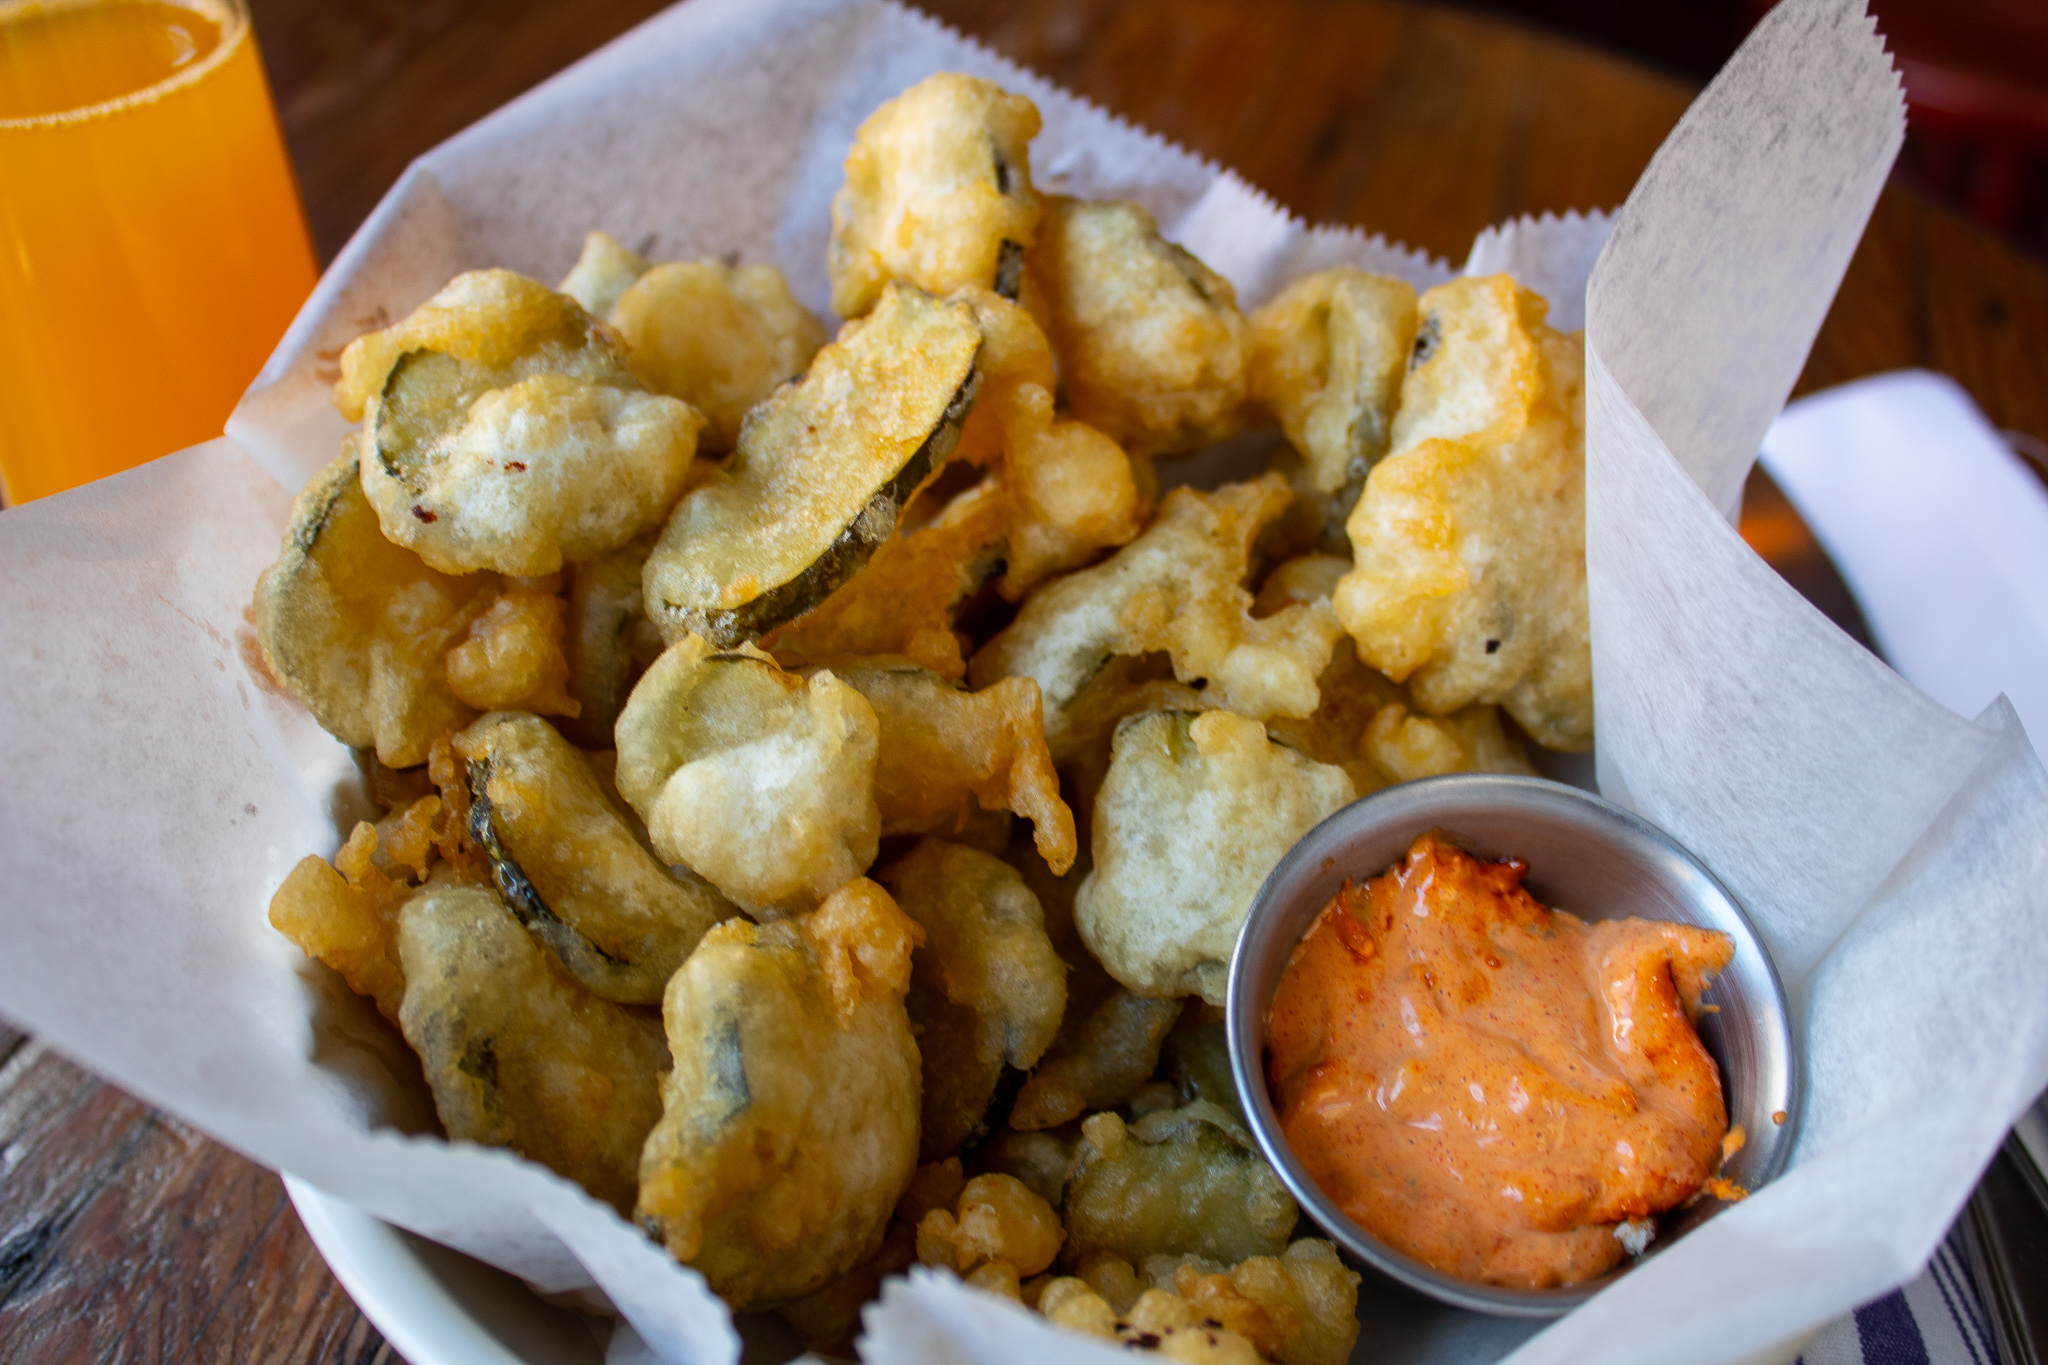 Beer Battered Pickles - Round slices fried in pale ale batter, spicy remoulade